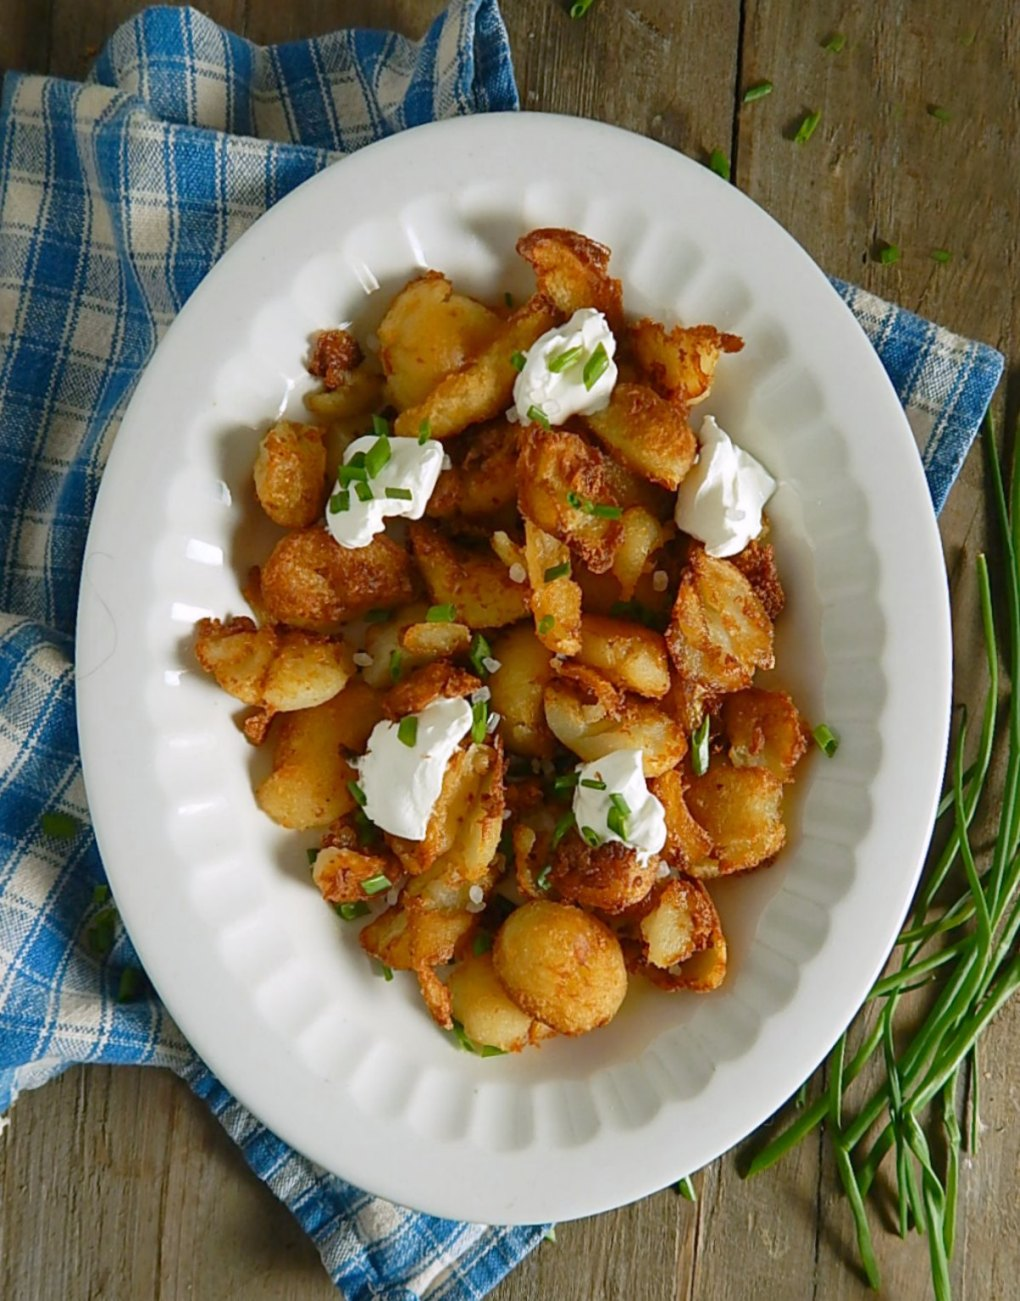 Baled Potato Hash Browns from Leftover Potatoes